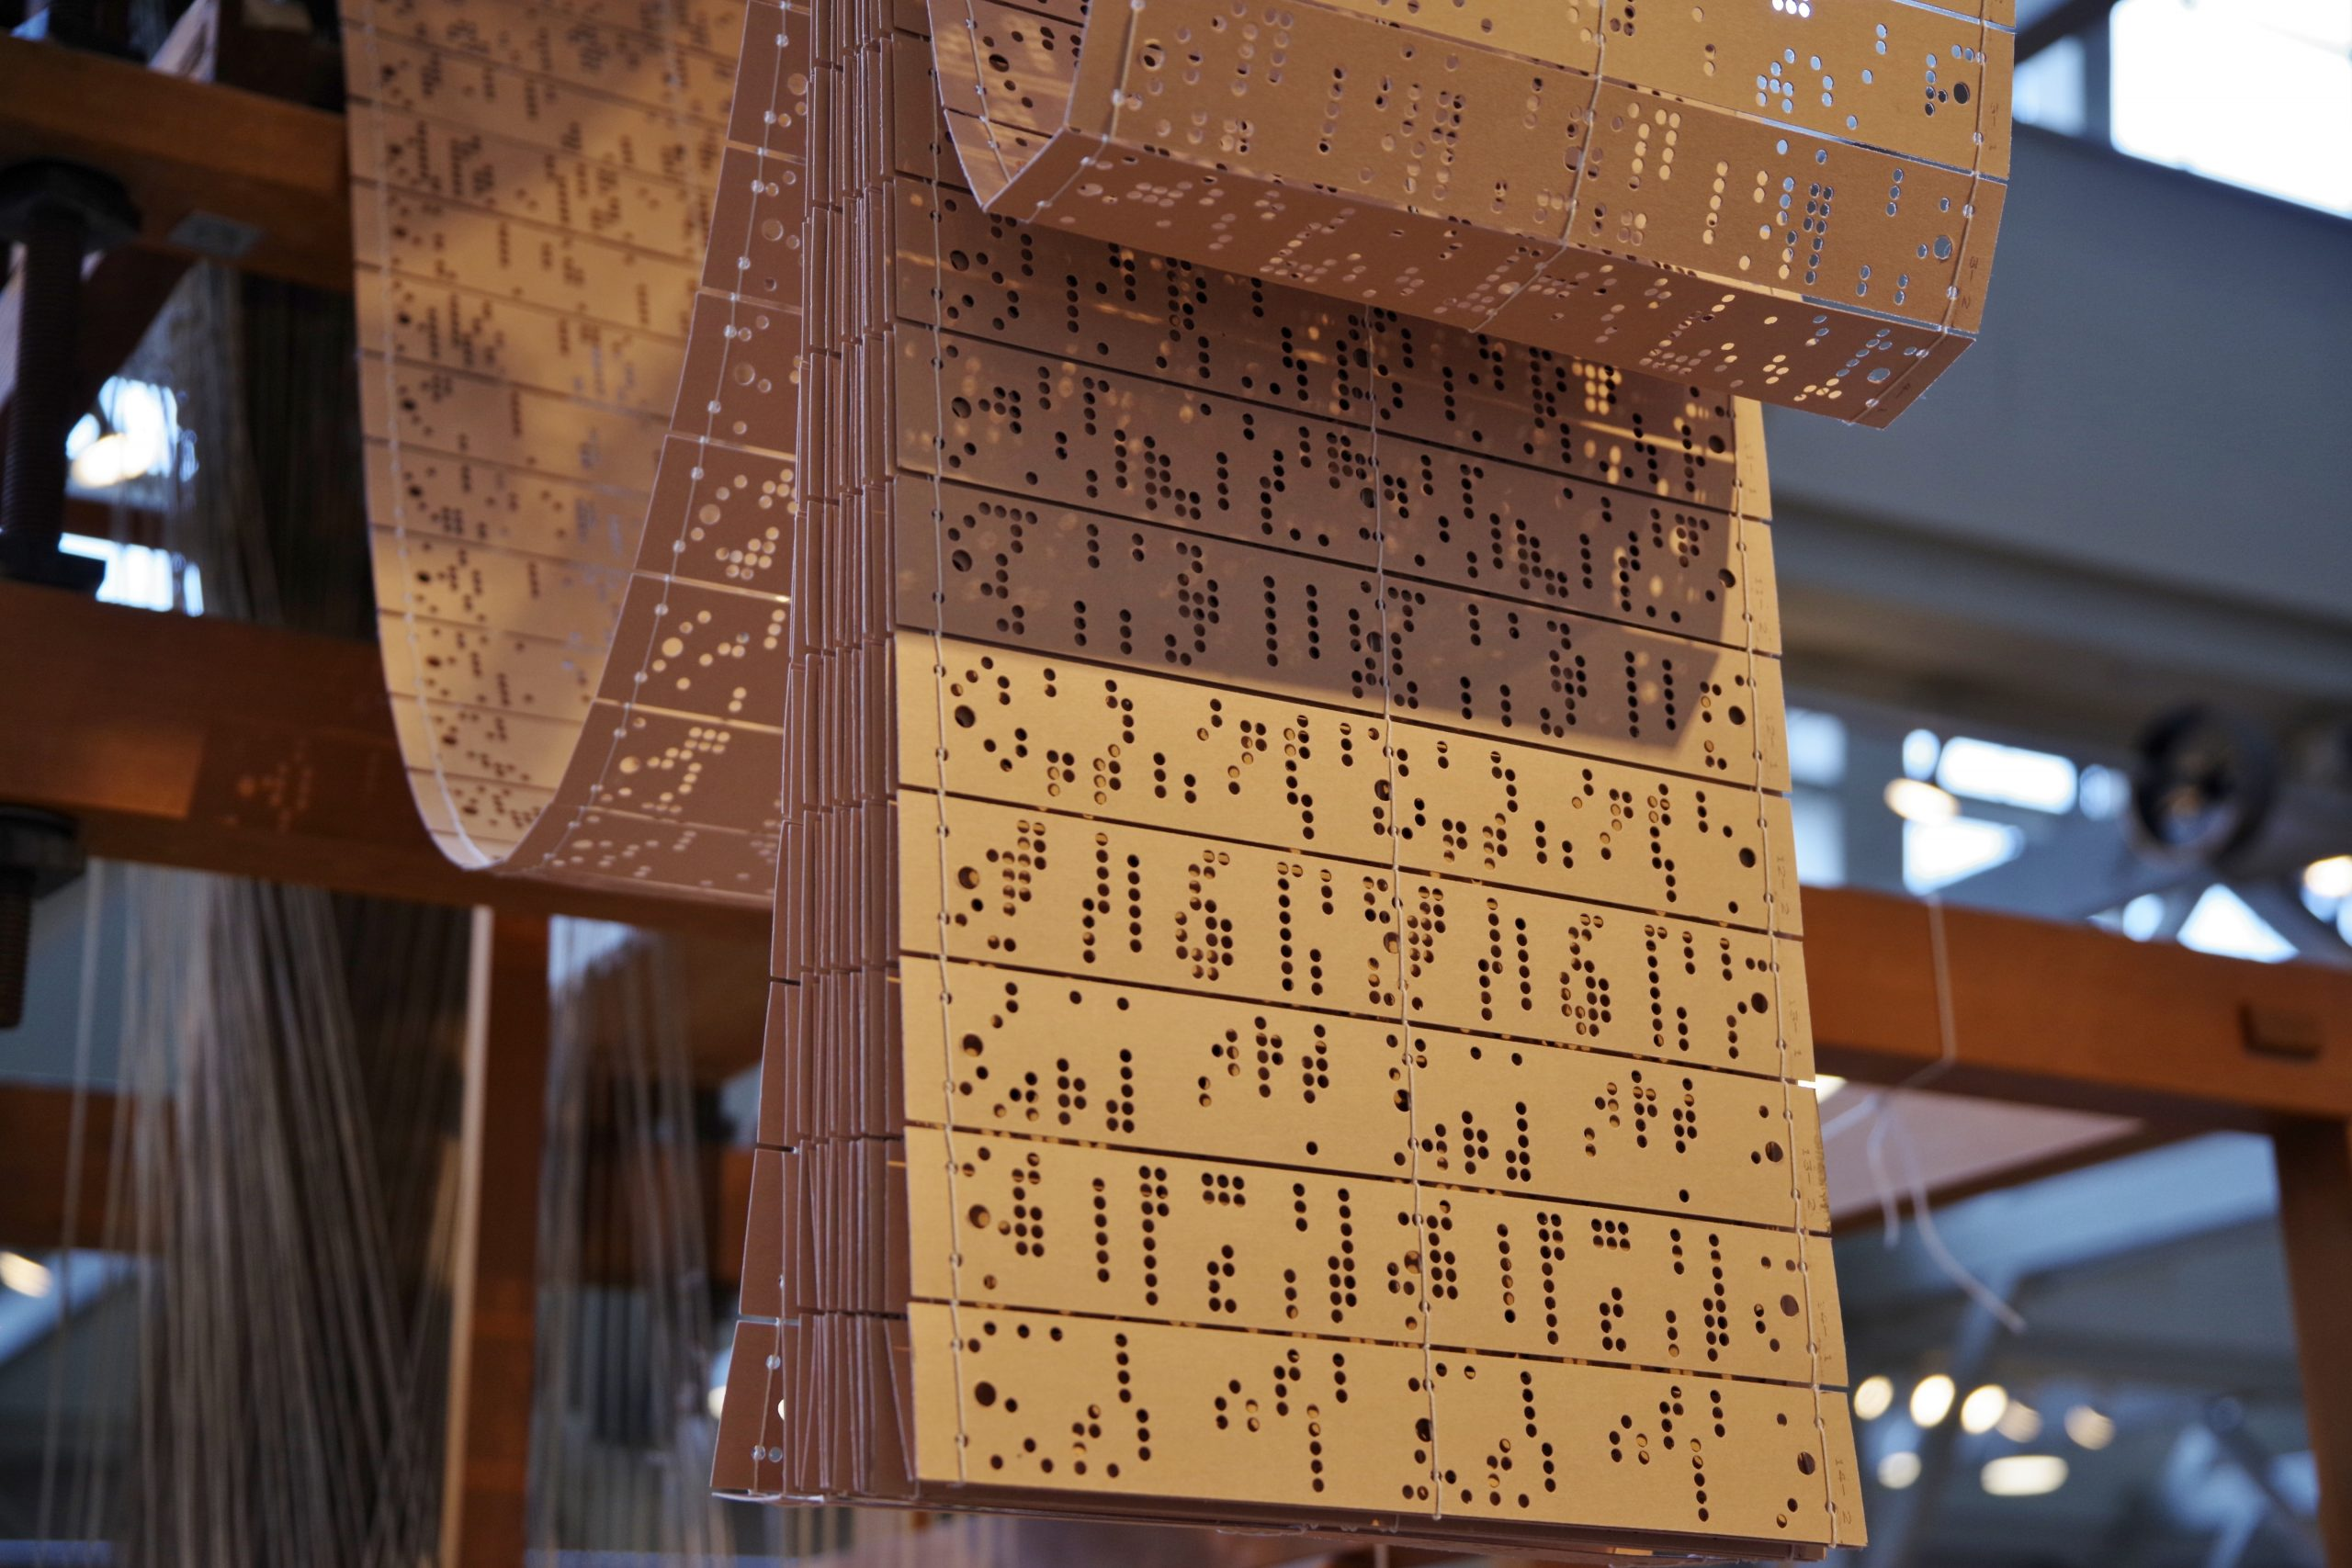 Punch cards of jacquard loom